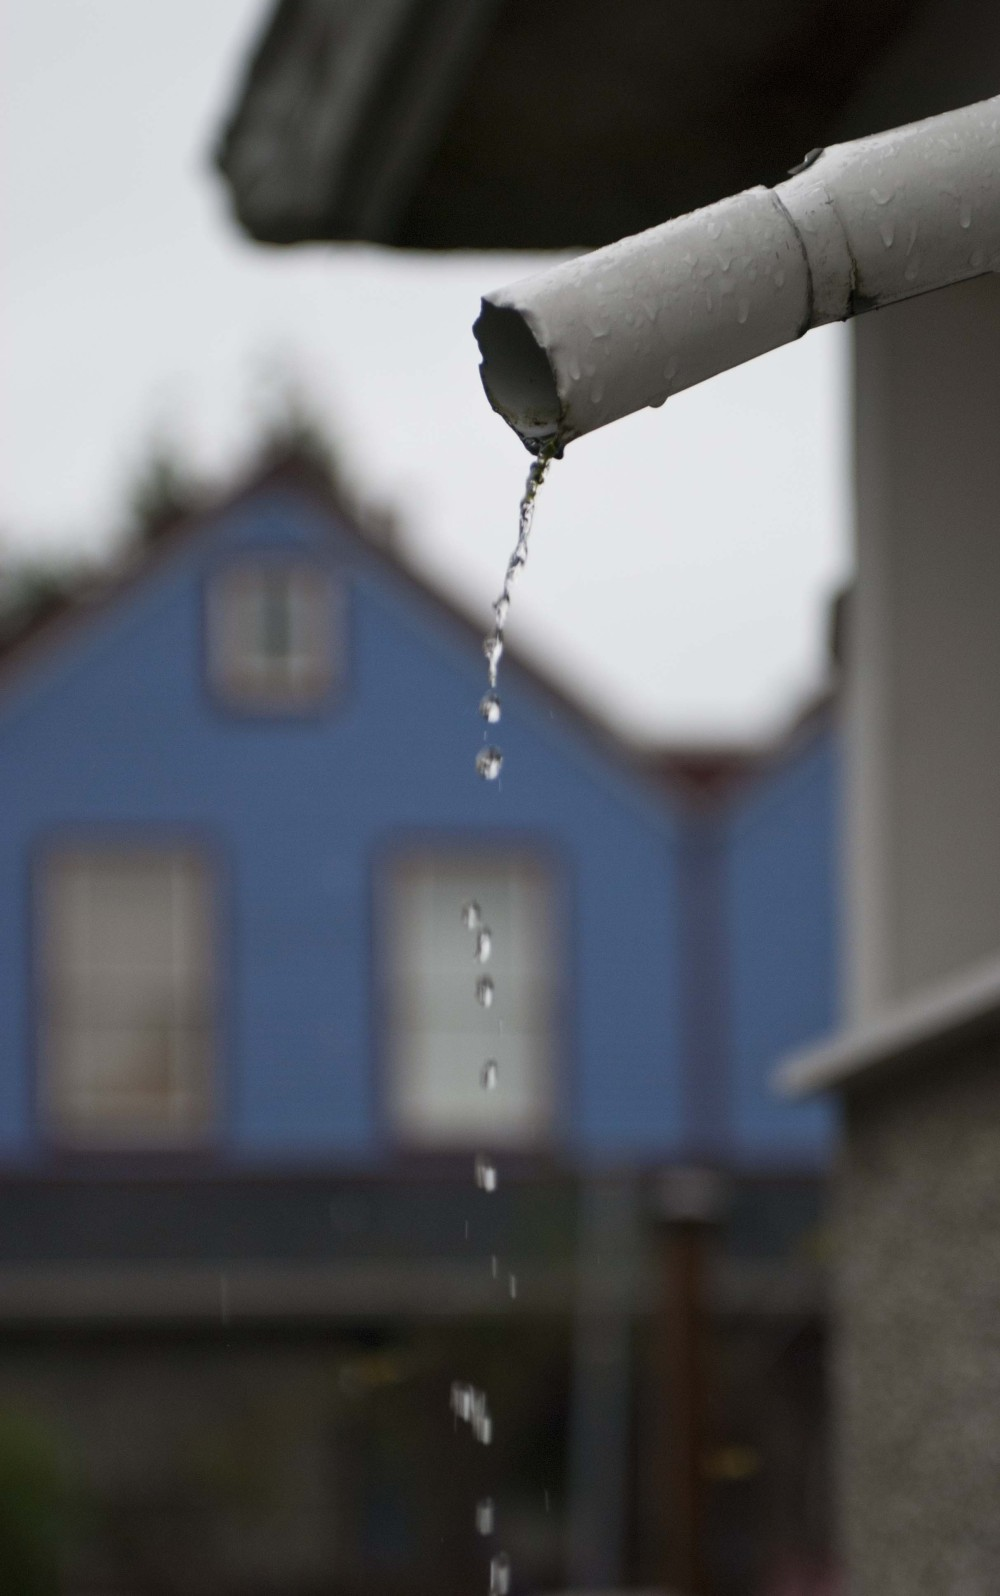 Dripping Drain Pipe